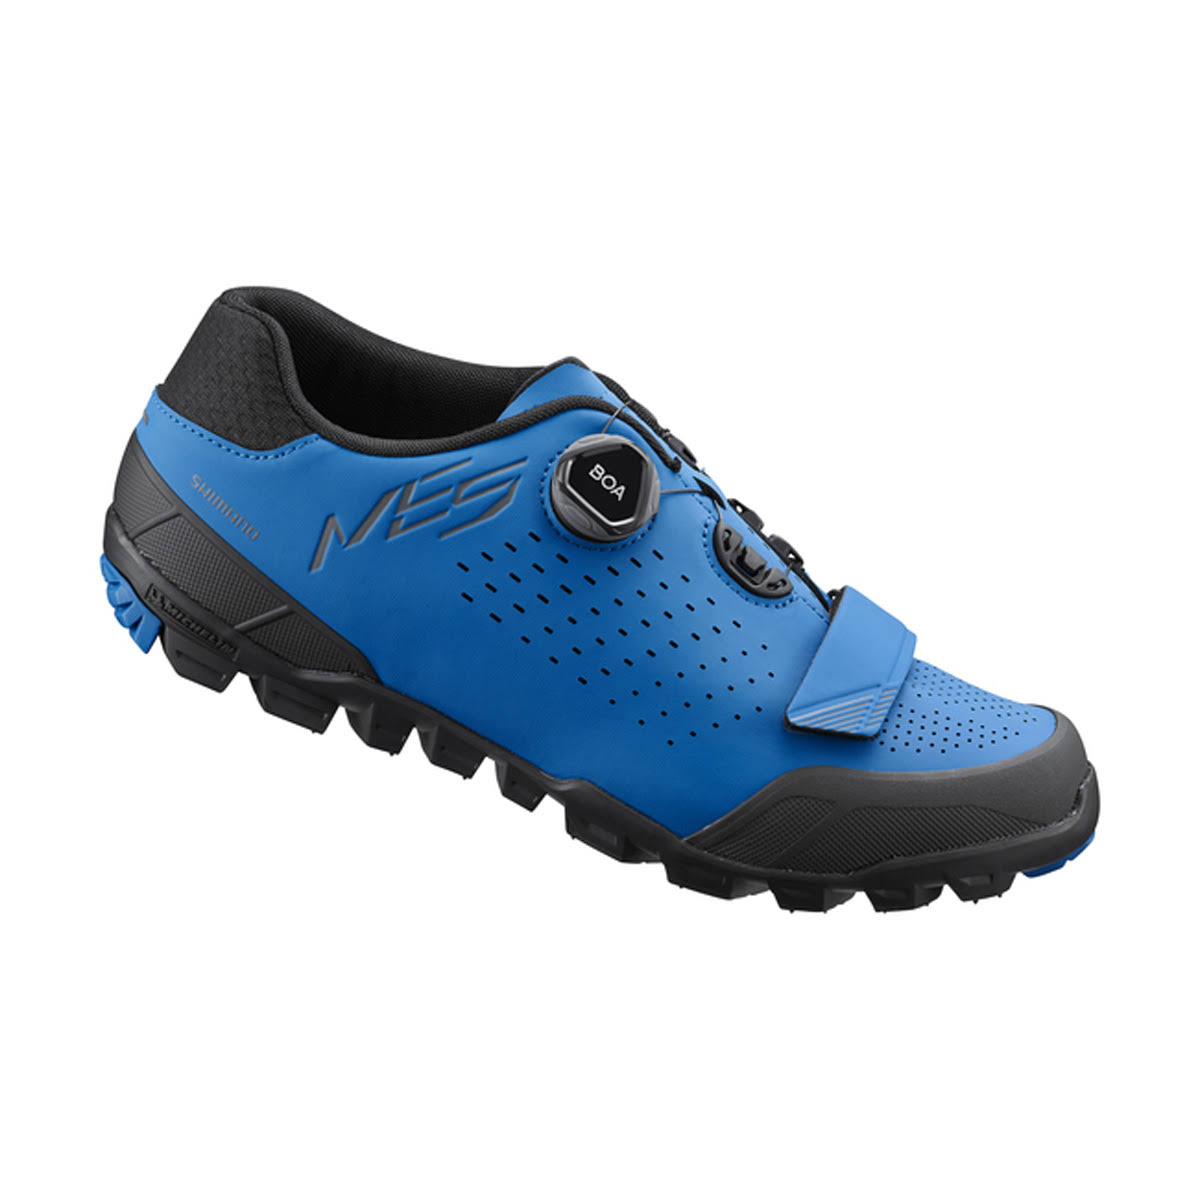 Shimano SH-ME501 Shoes 2020 Men's Size 48 in Blue